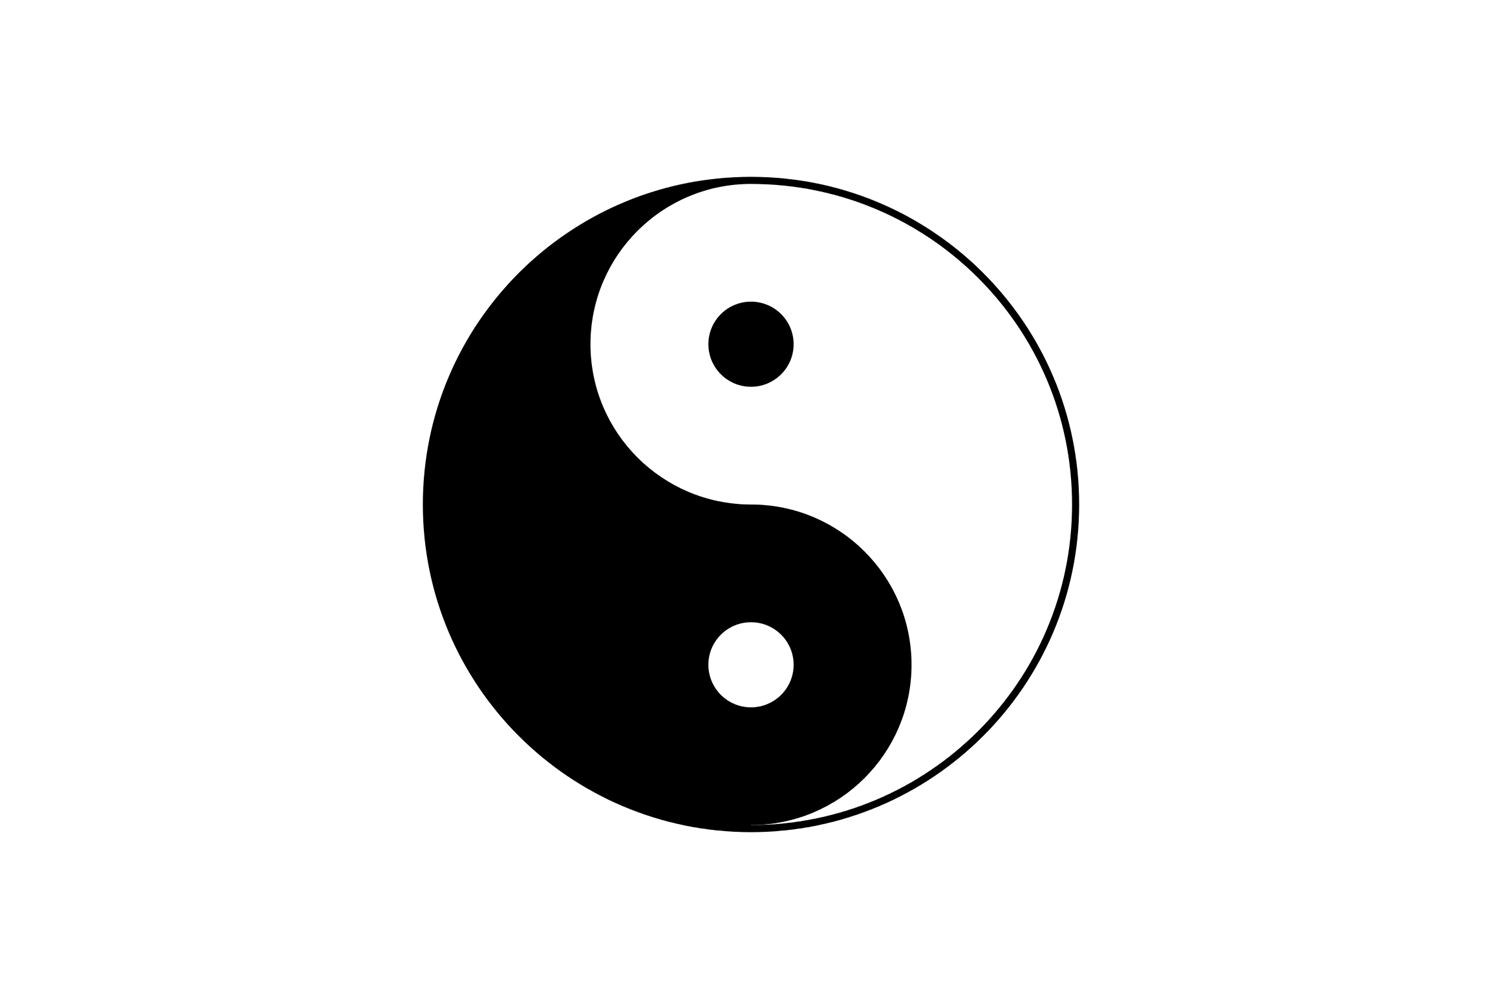 File:Flag of Yin and Yang.png - Wikimedia Commons